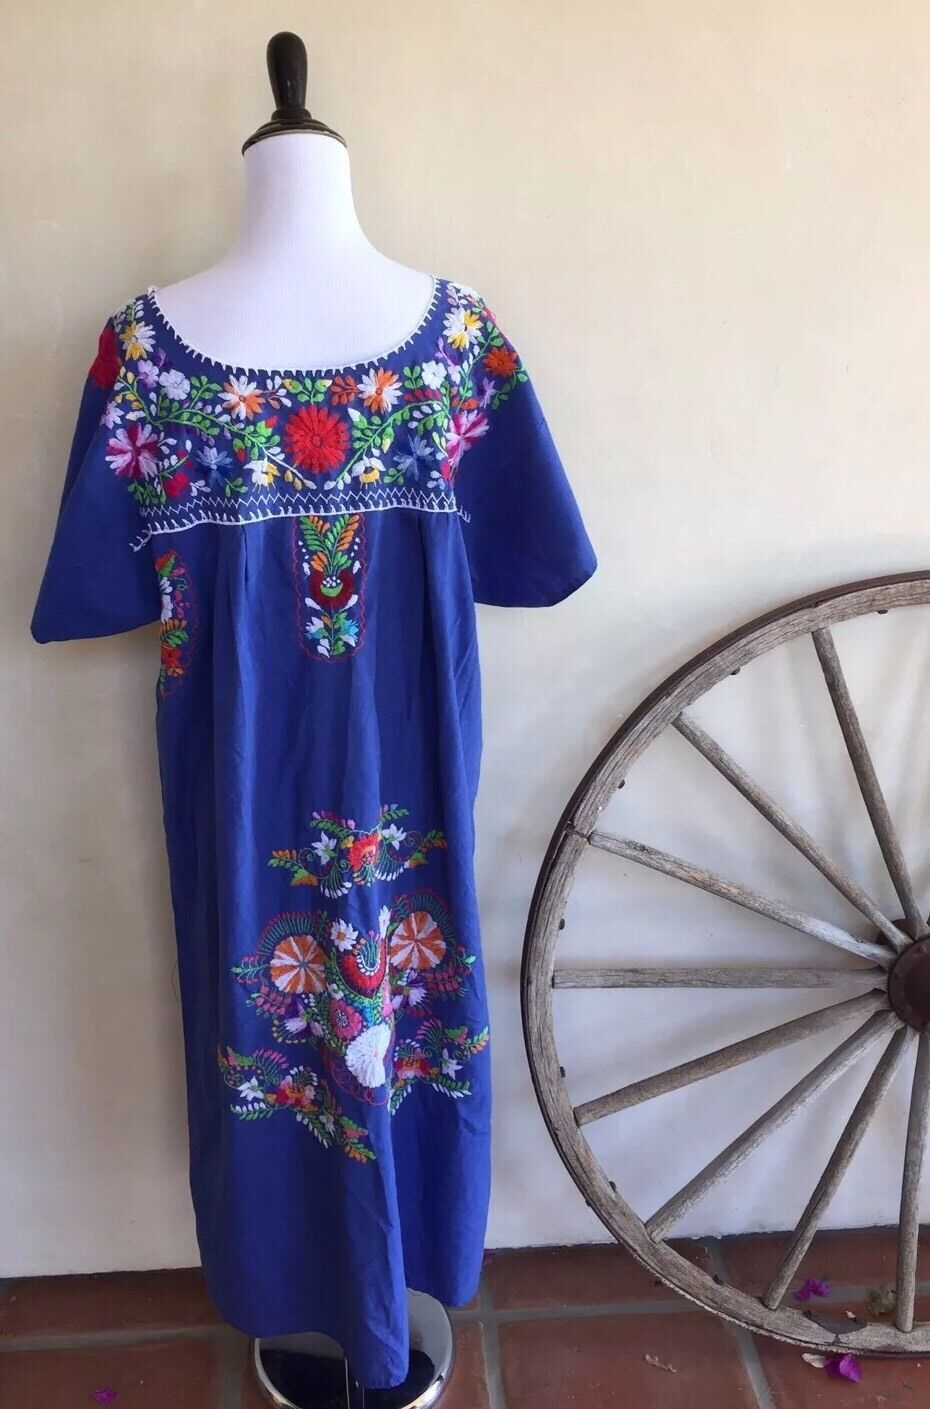 HANDMADE MEXICAN Beautiful Cobalt Blau Dress Floral Embroiderot Cotton L Mexico